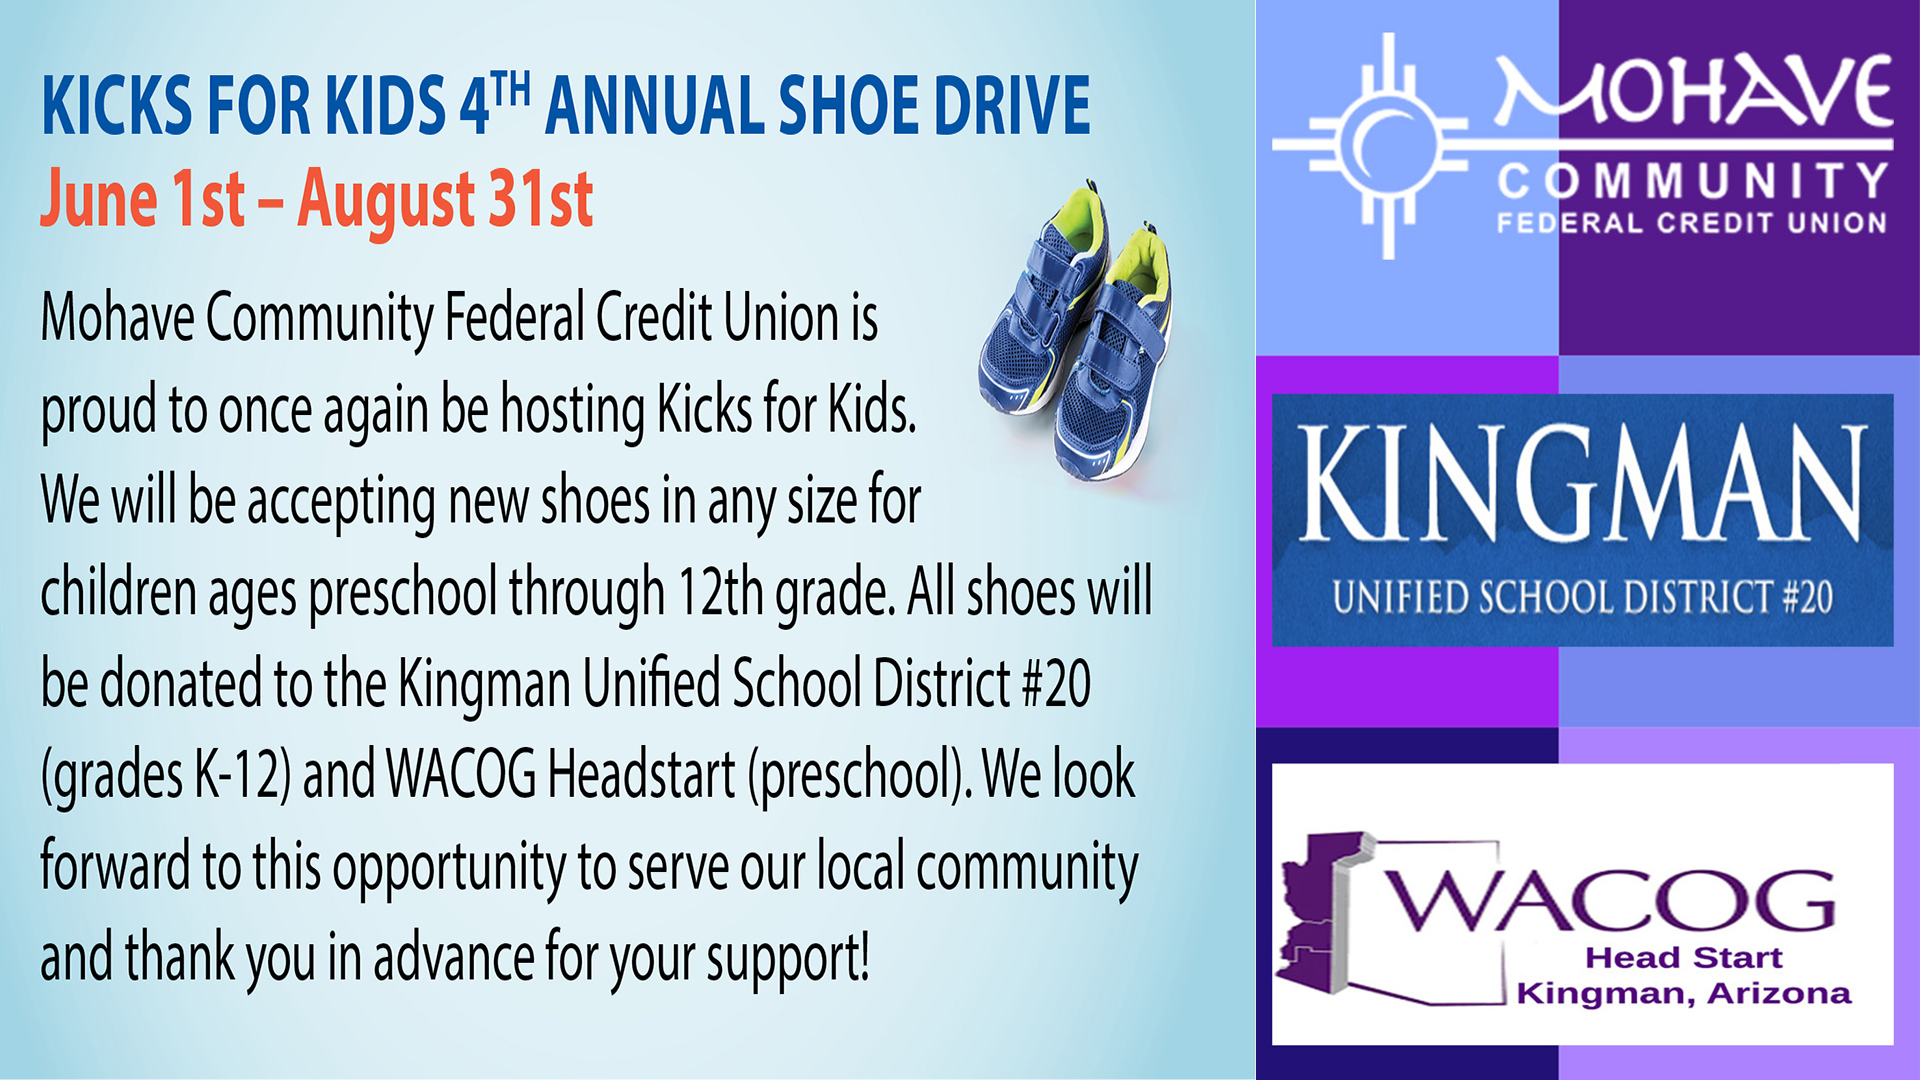 4th Annuual Kicks for Kids Shoe Drive now through August 31st donate a pair of brand new shoes, any size to Mohave Community Federal Credit Union located at 2809 Stockton Hill Road. All shoes go to benefit the chidlren of Kingman Unified School District #20 and WACOG Headstart. Call 928-753-8000 for more information.